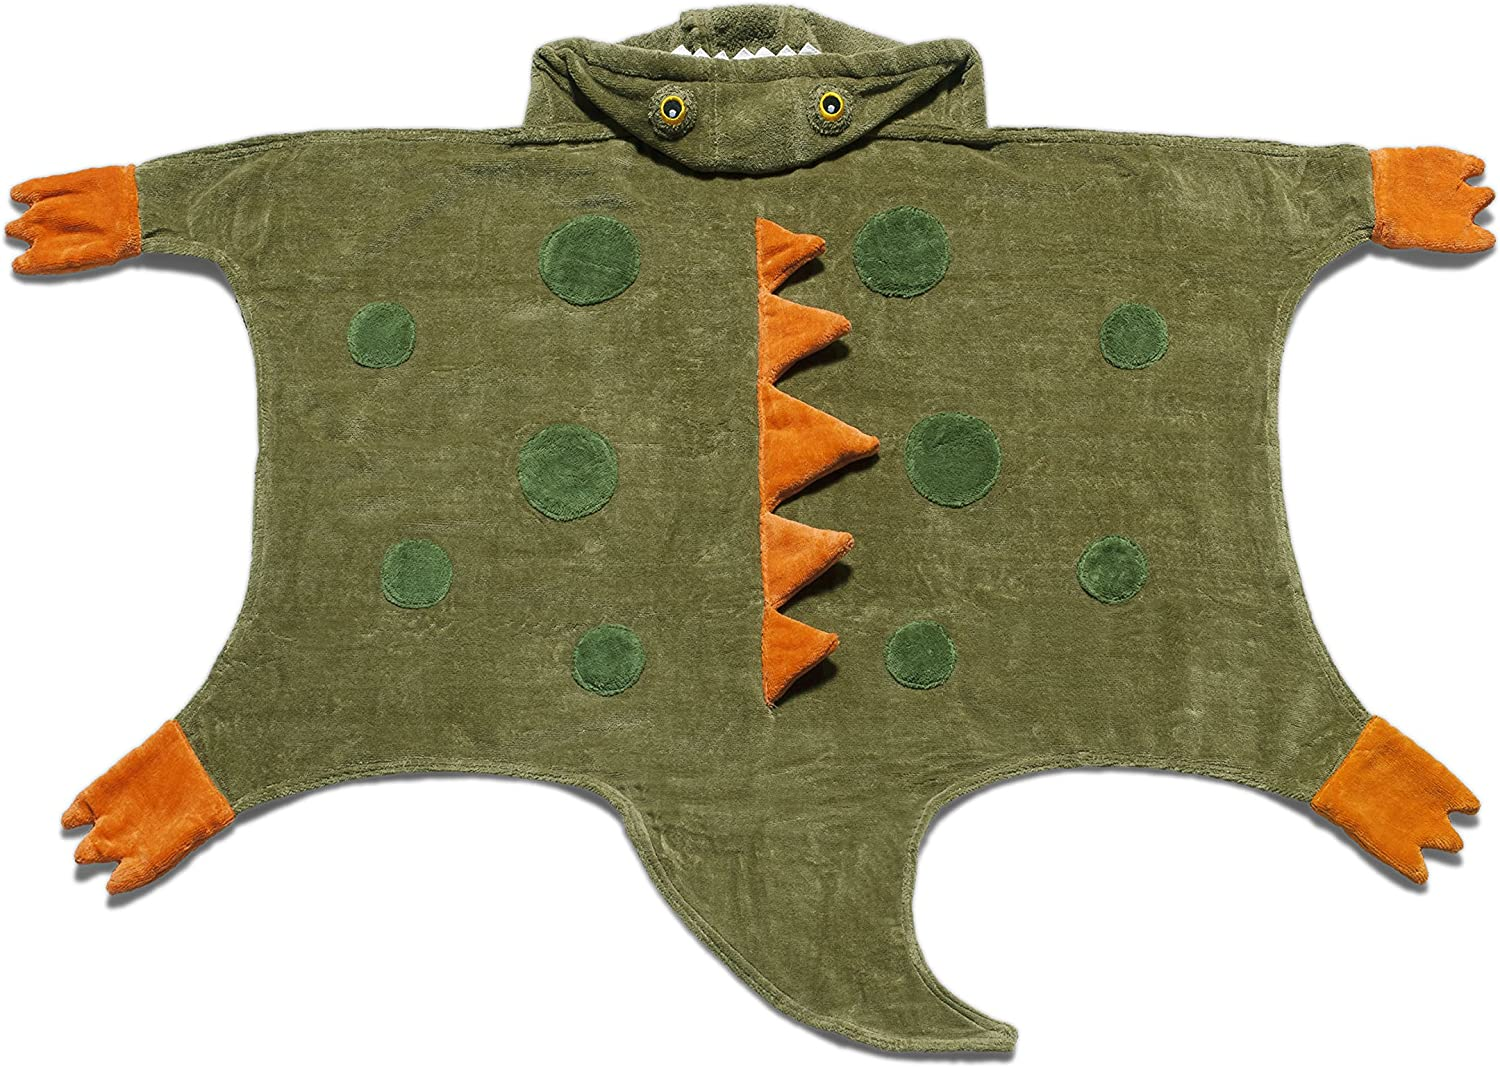 Kidorable Baby Boys' Dinosaur Towel